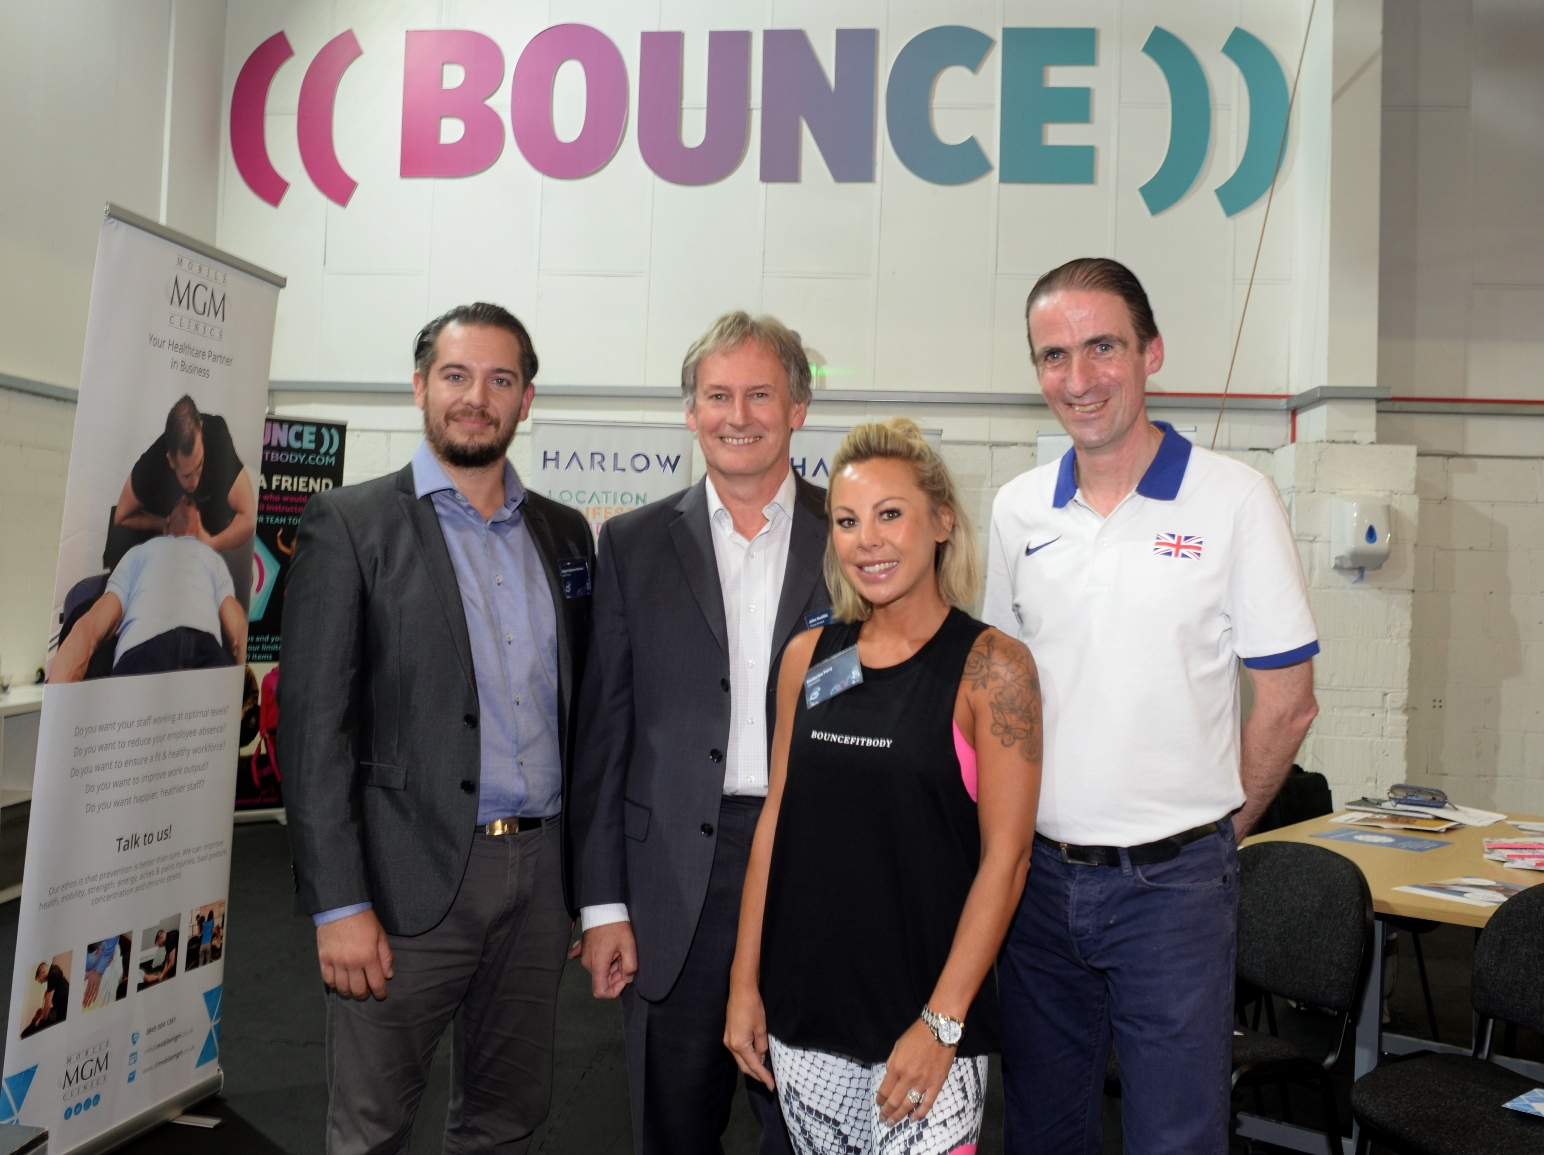 Harlow Ambassador Meeting at BOUNCE HQ